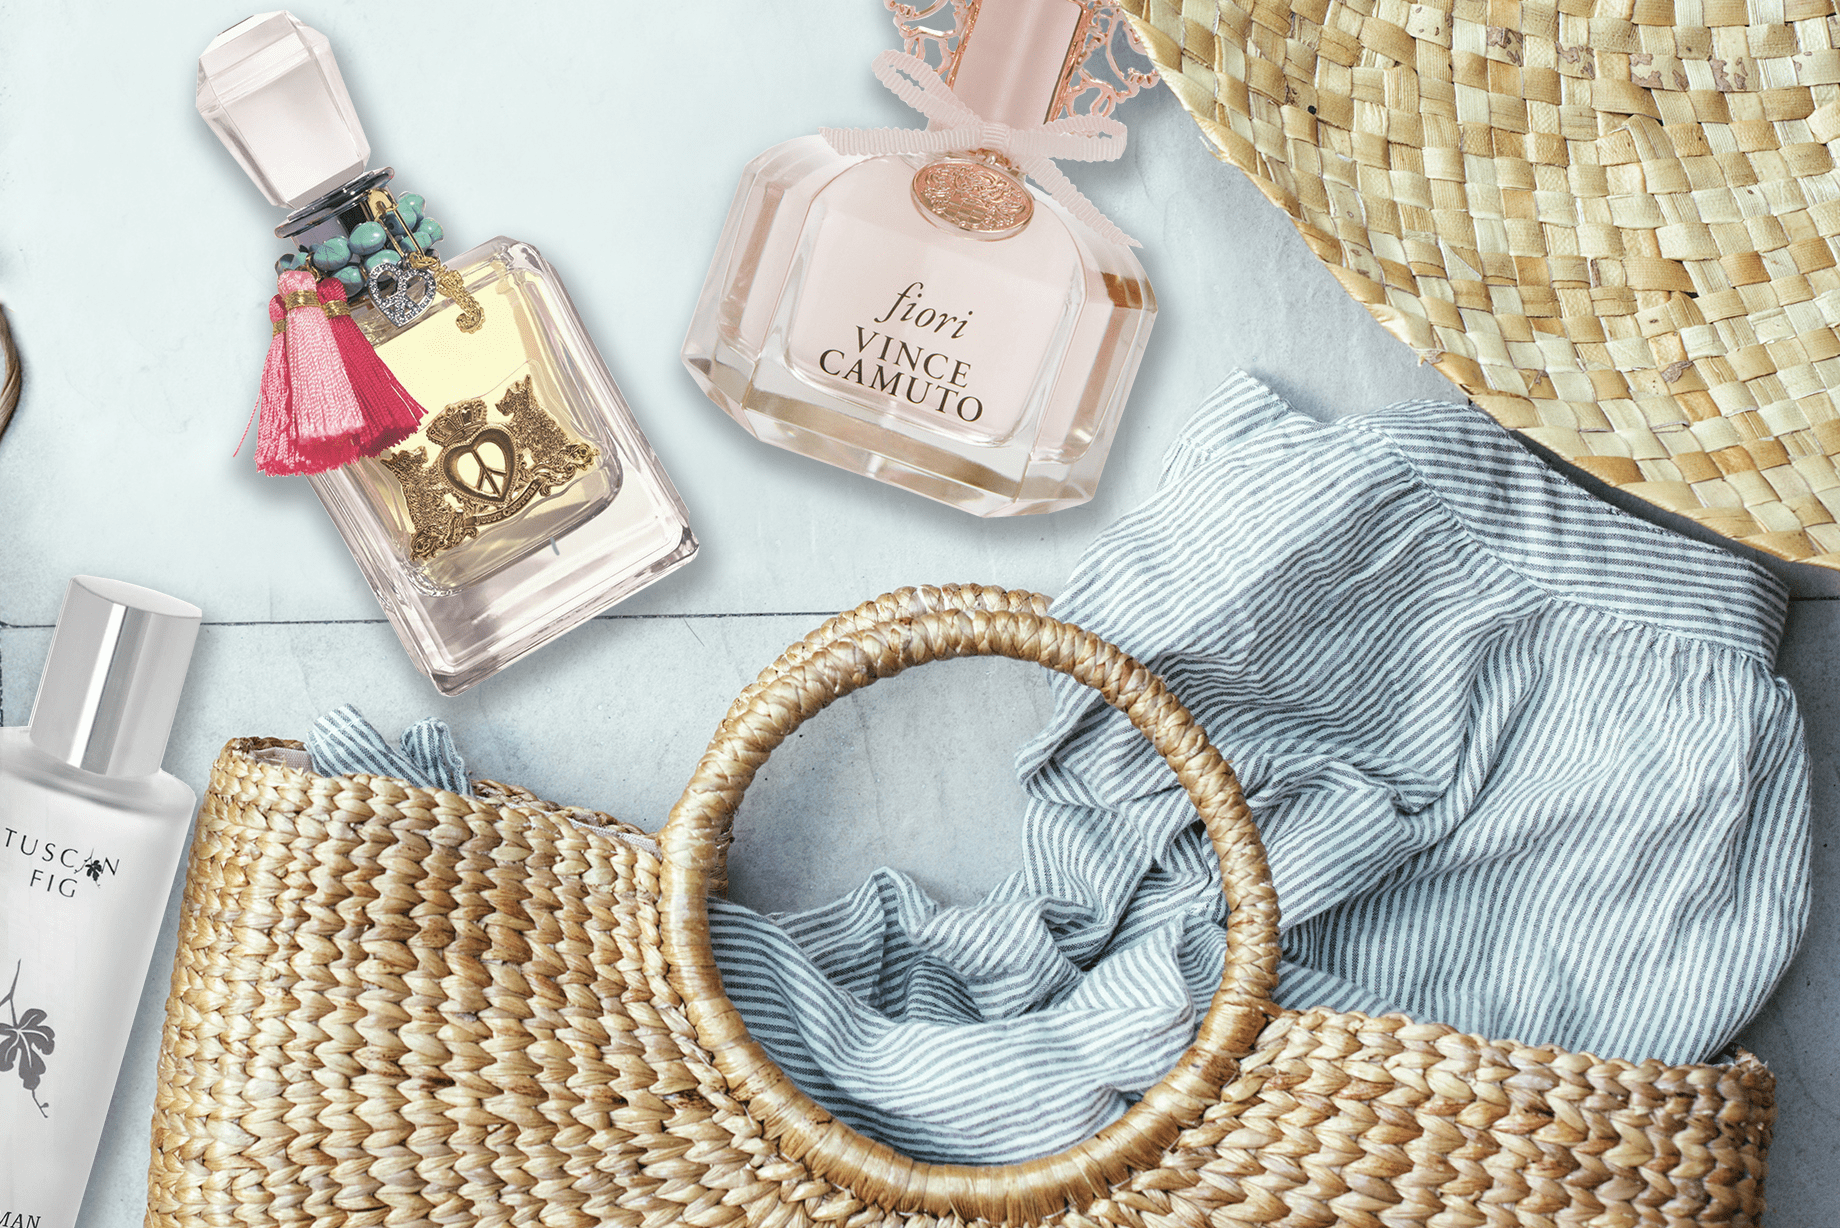 Make Perfume Your Number One Beach Accessory